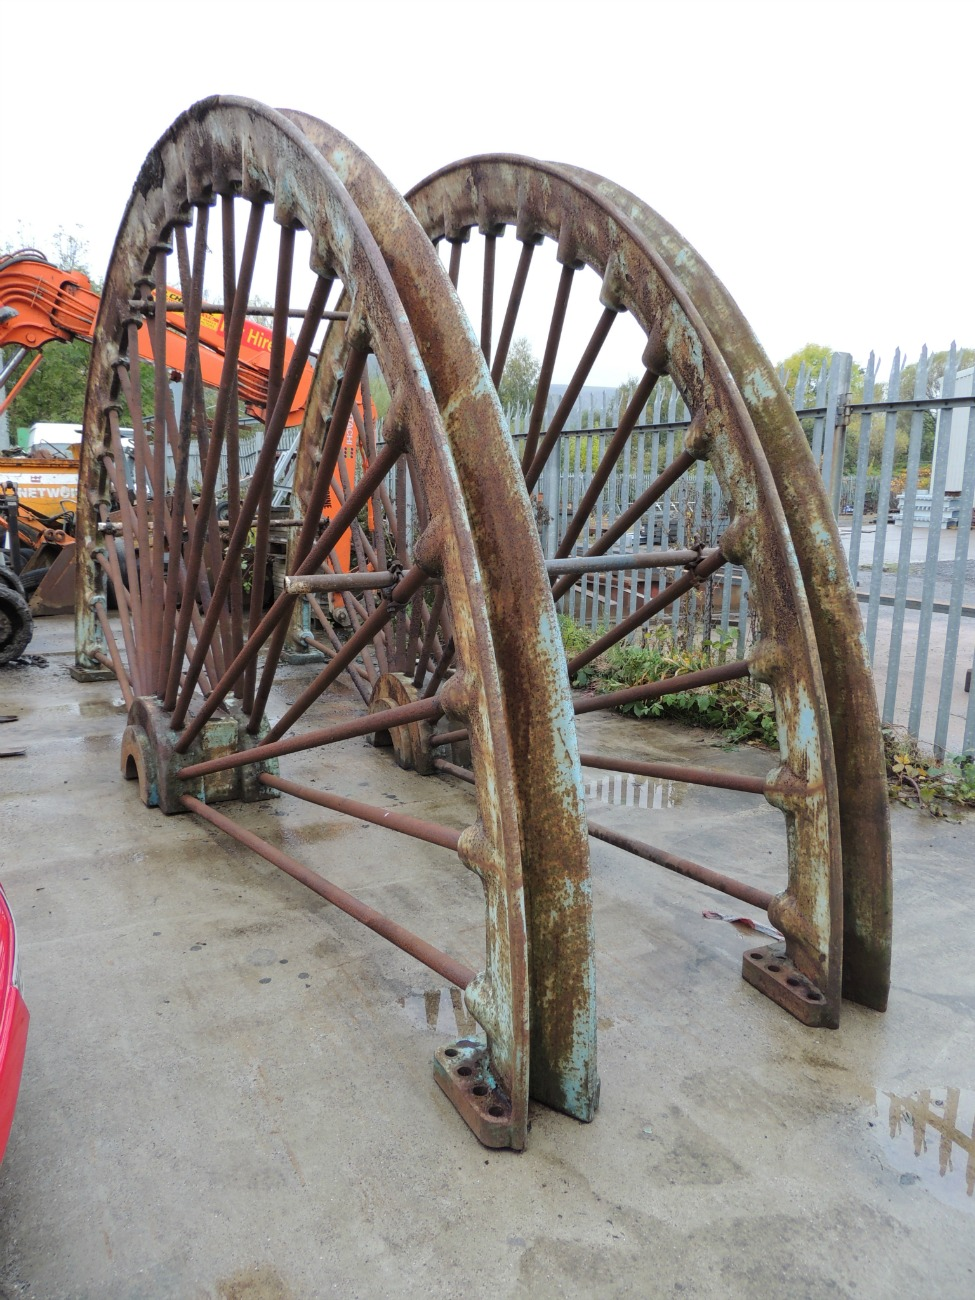 As part of the project the wheel underwent refurbishment.